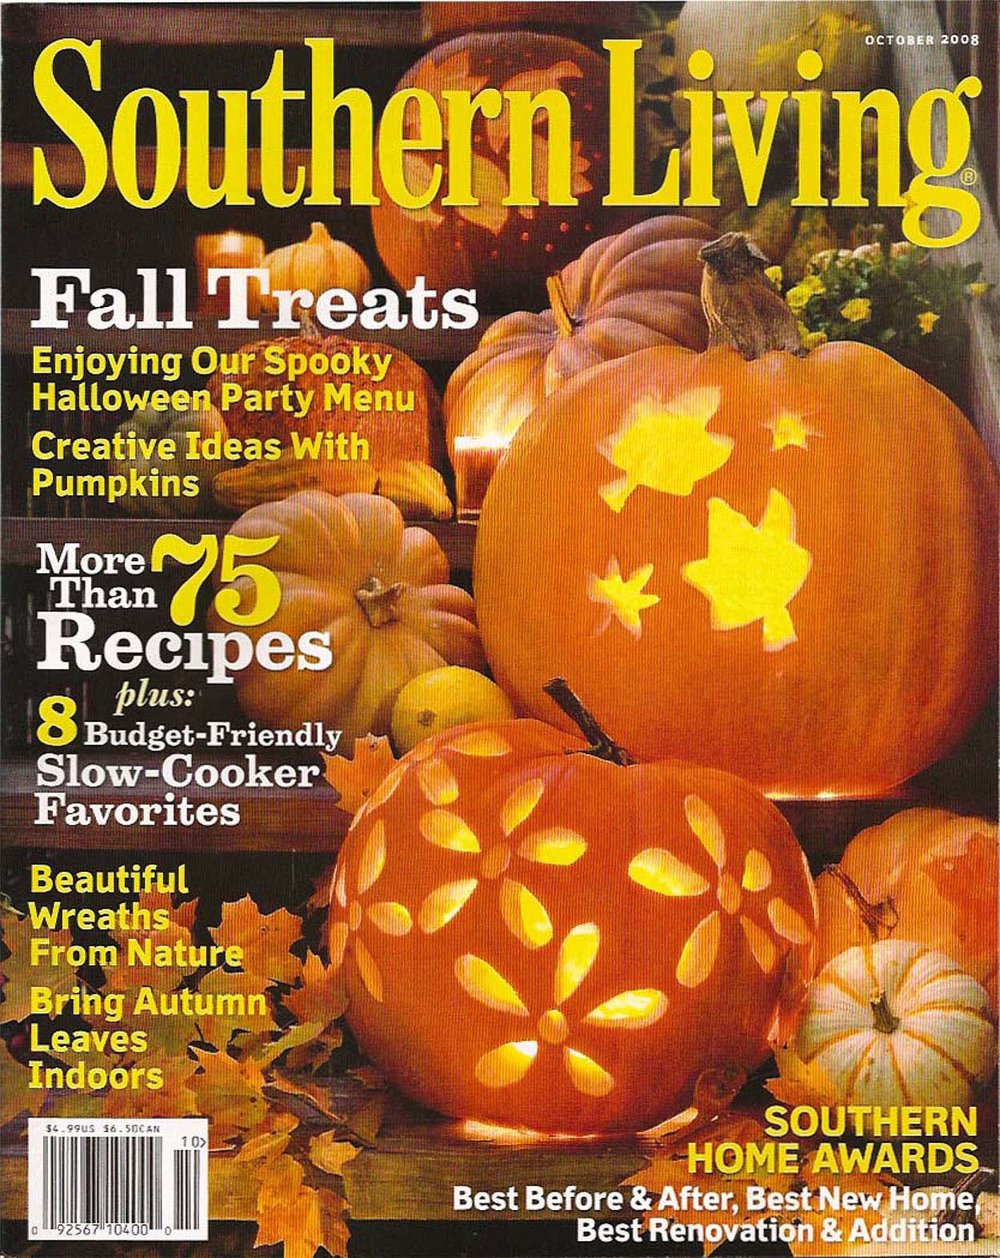 SouthernLiving_Oct2008_cover.jpg